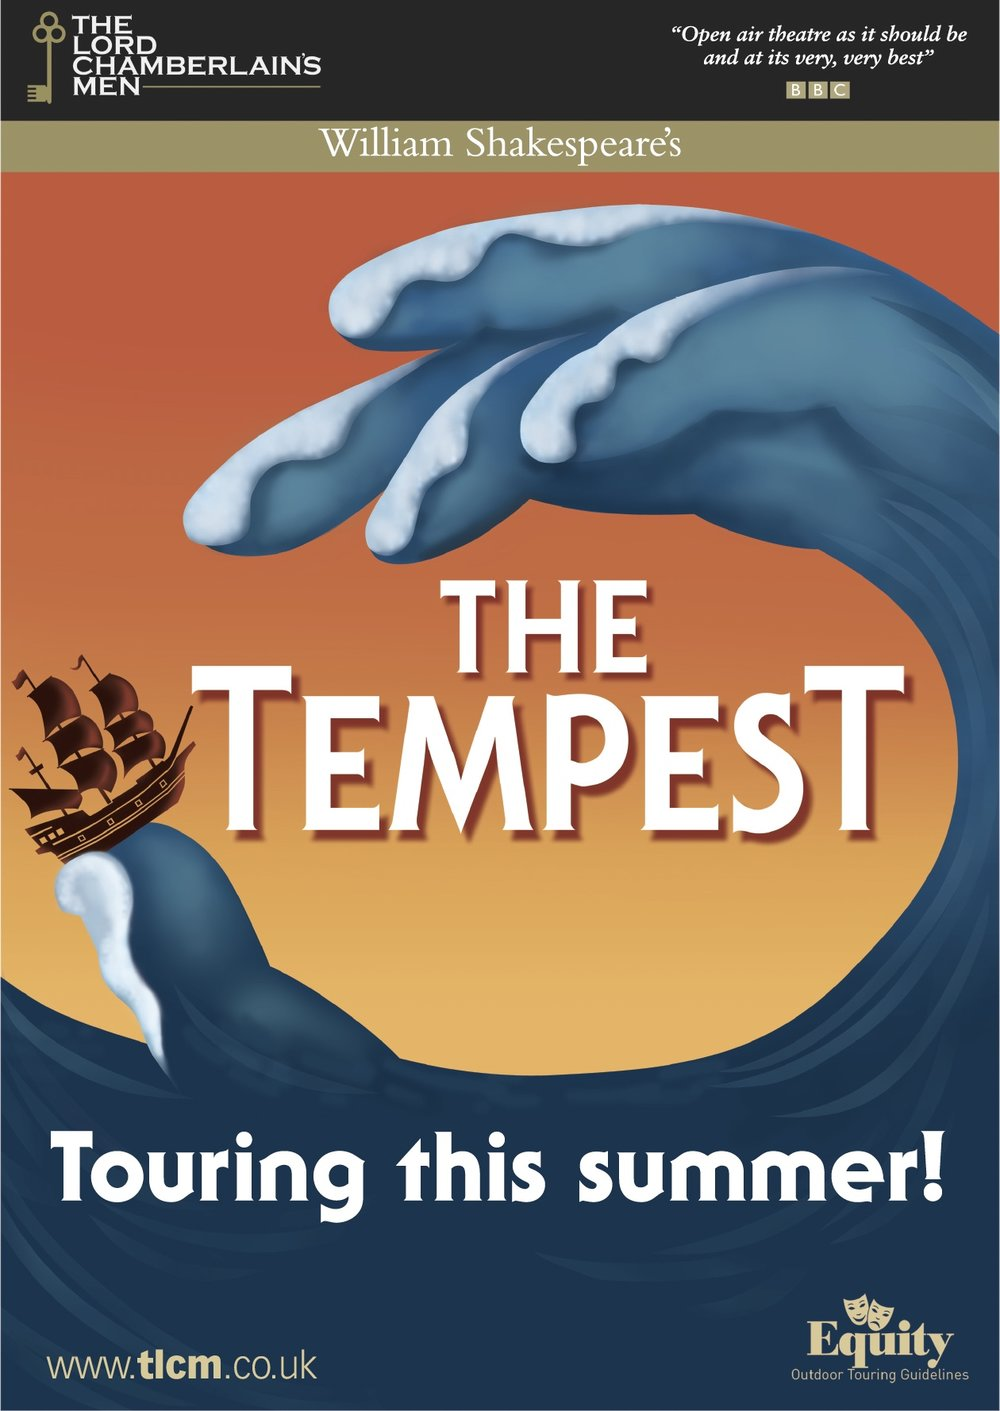 The Tempest performed by the Lord Chamberlain's Men - Back by popular demand after last year's stunningly successful evening The Lord Chamberlain's men return to Dummer Down Farm hosted by MOTGS.